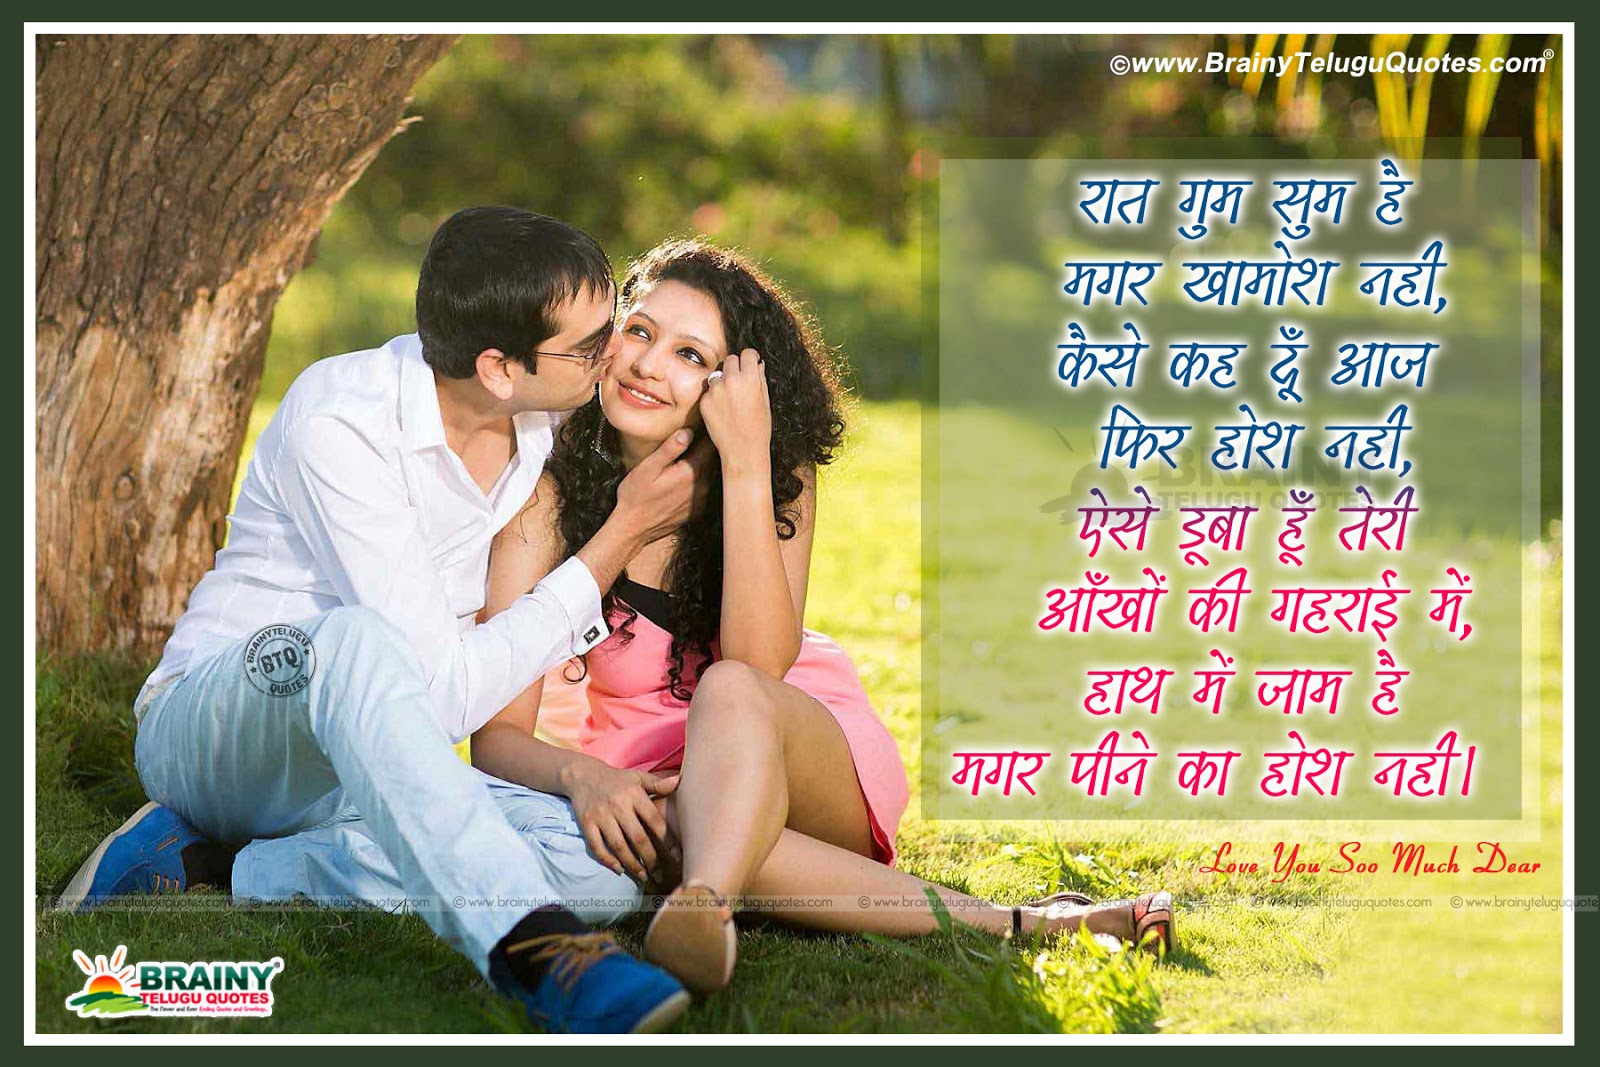 Hd Images Of Love Couple With Quotes In Hindi | Wallpaper ...